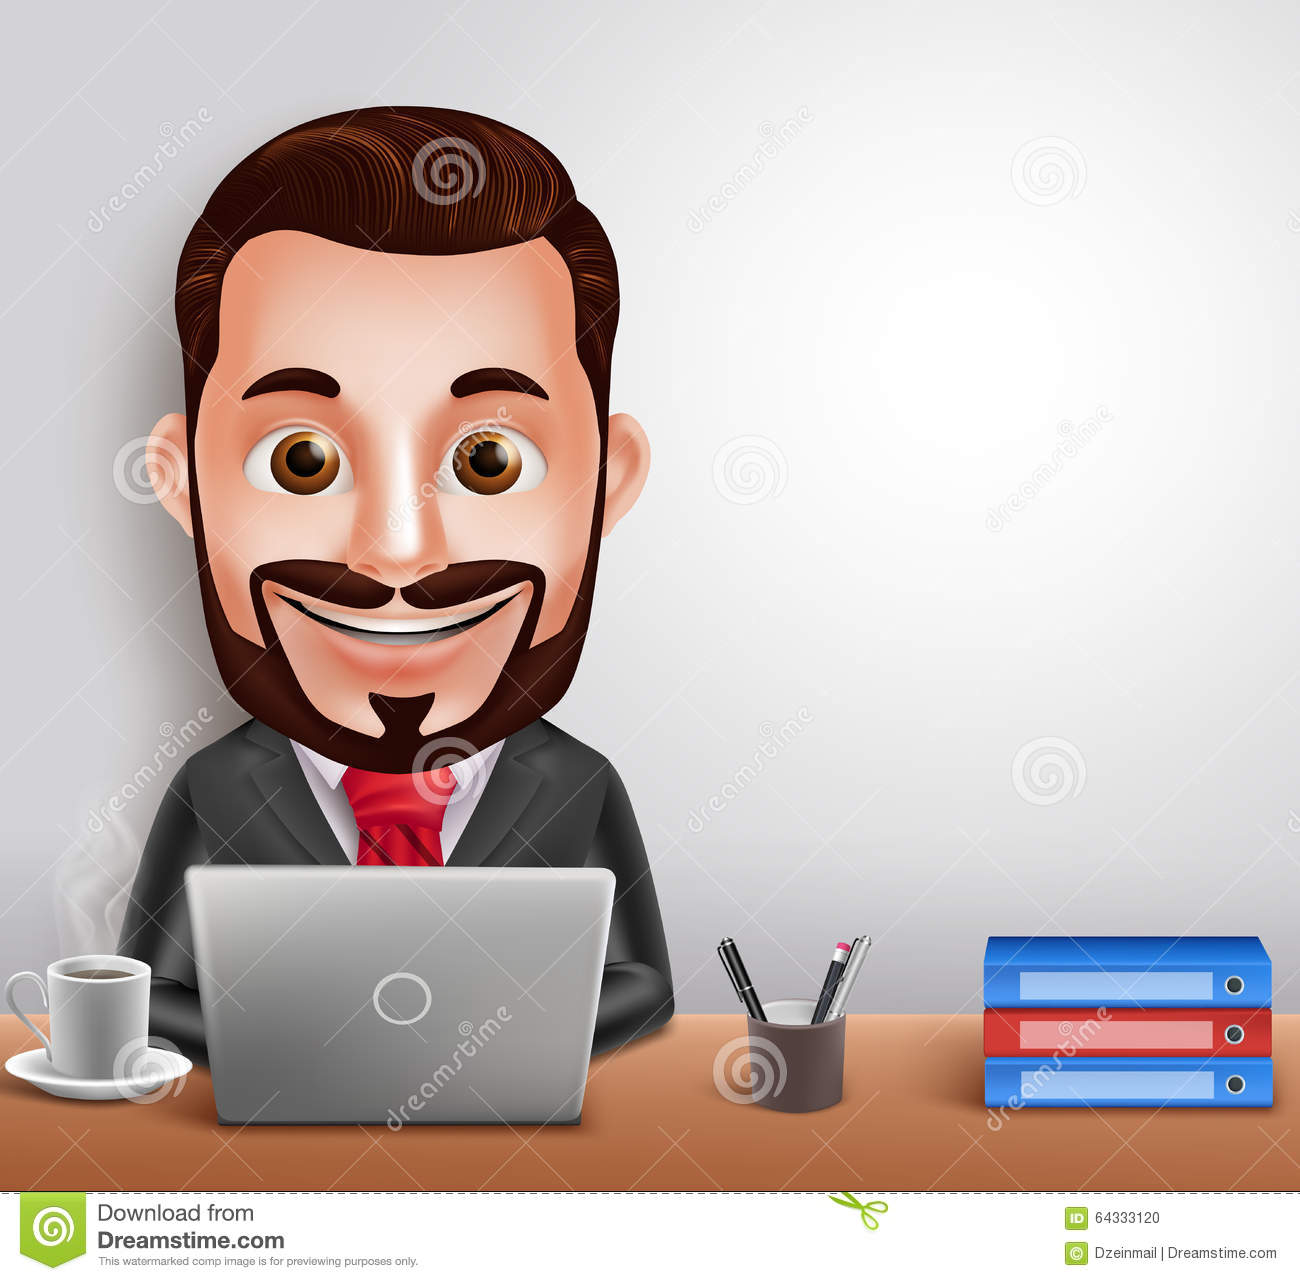 professional-business-man-vector-character-busy-working-office-desk-d-realistic-laptop-computer-illustration-64333120.jpg